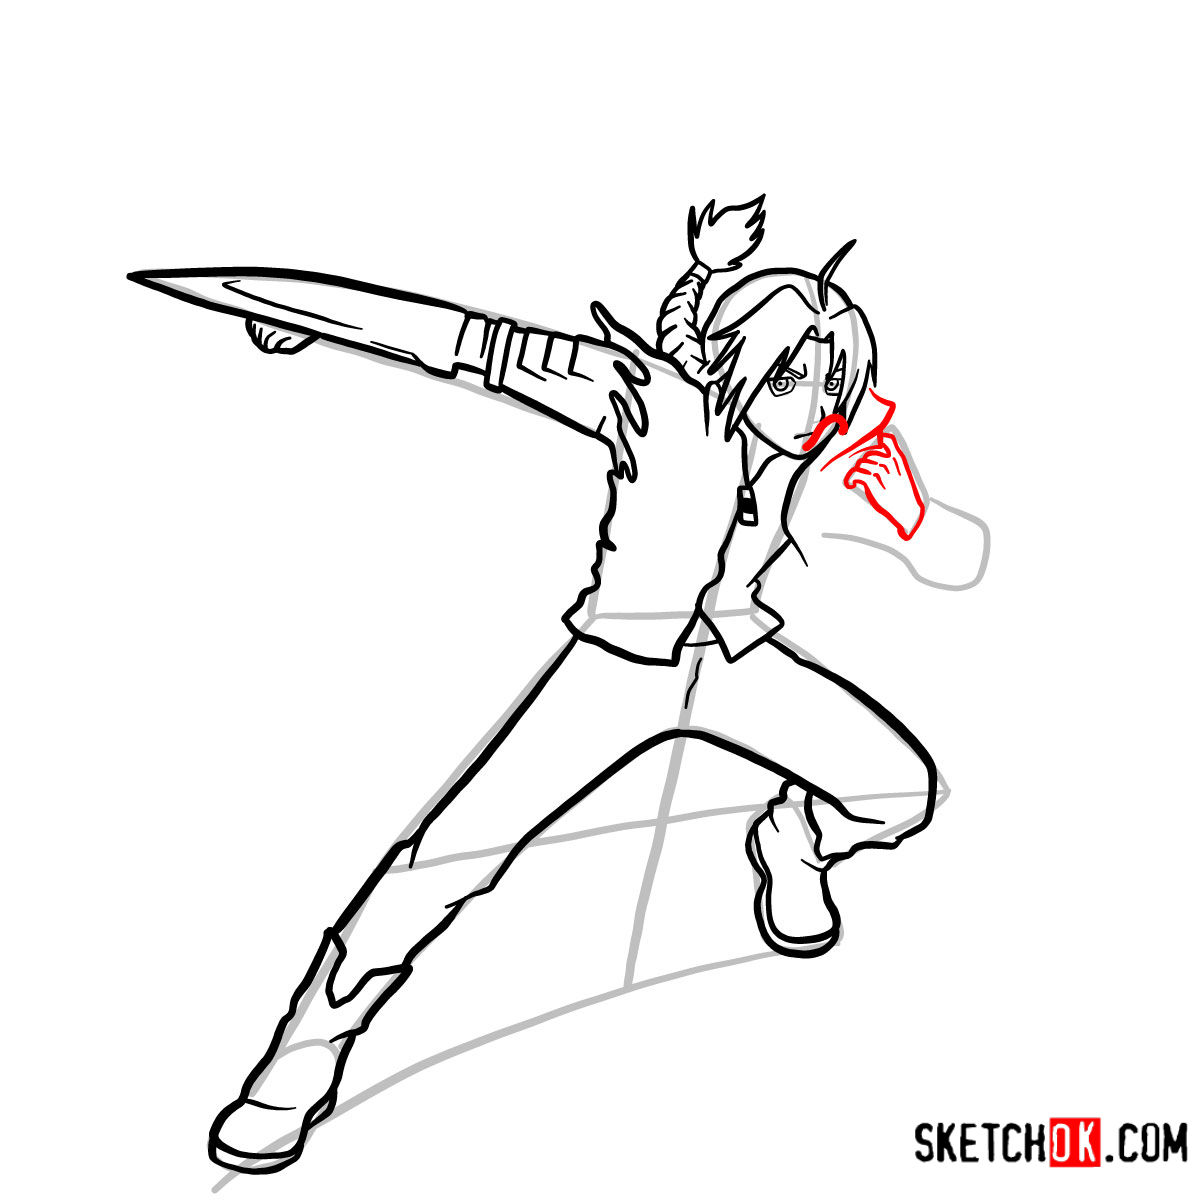 How to draw Edward Elric in a fight | Fullmetal Alchemist - step 11